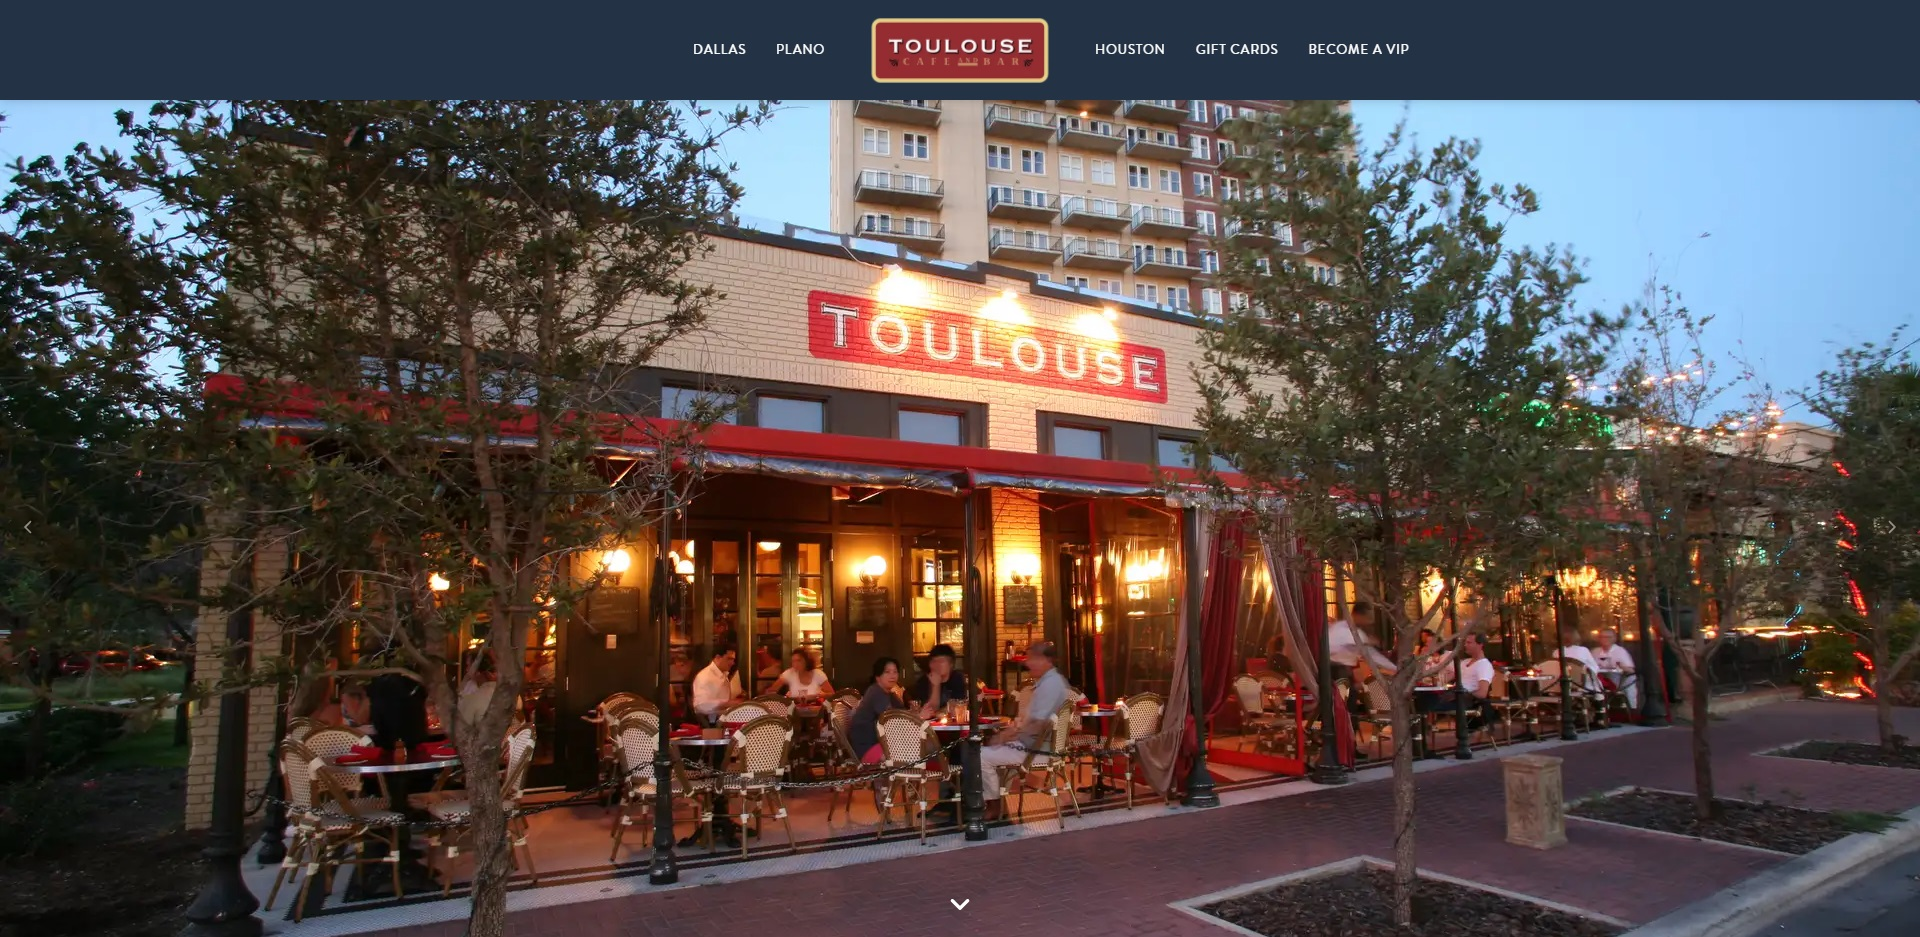 The Best French Cuisine in Dallas